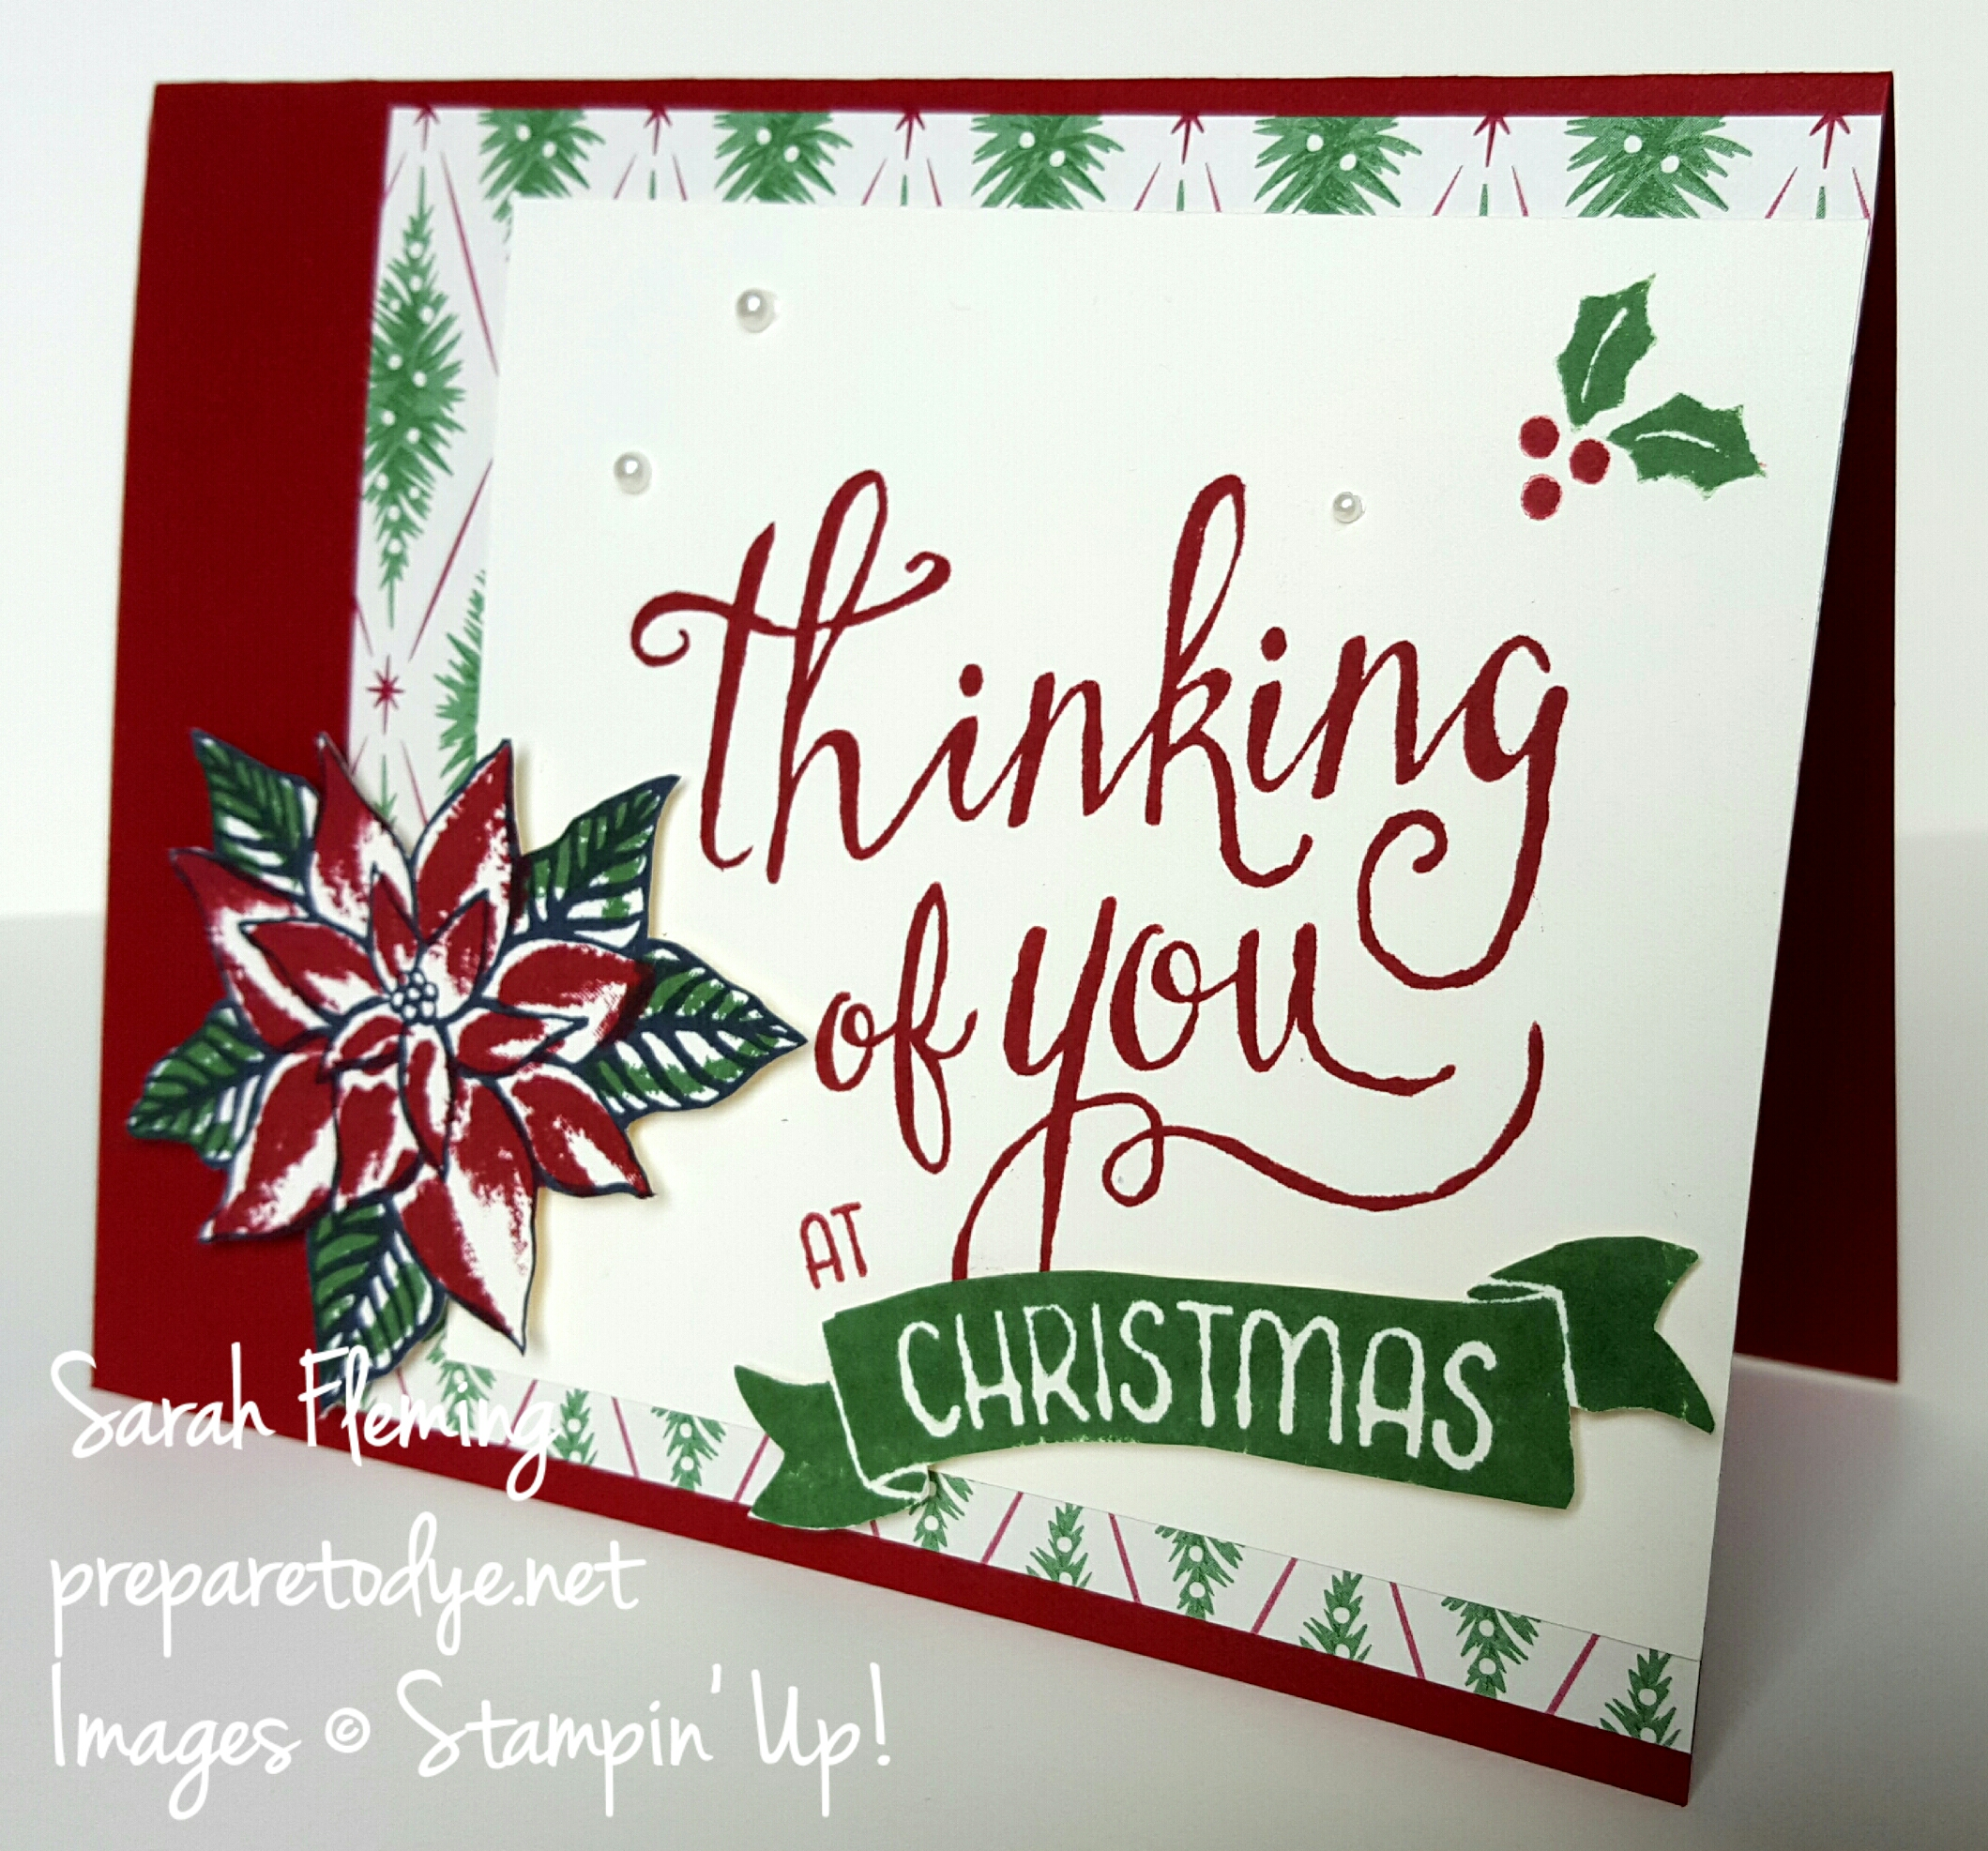 Stampin' Up!'shipment host sets this year are wonderful. Time of Year makes beautiful Christmas cards and pairs nicely with the poinsettia from Reason For the Season - Sarah Fleming - Prepare to Dye